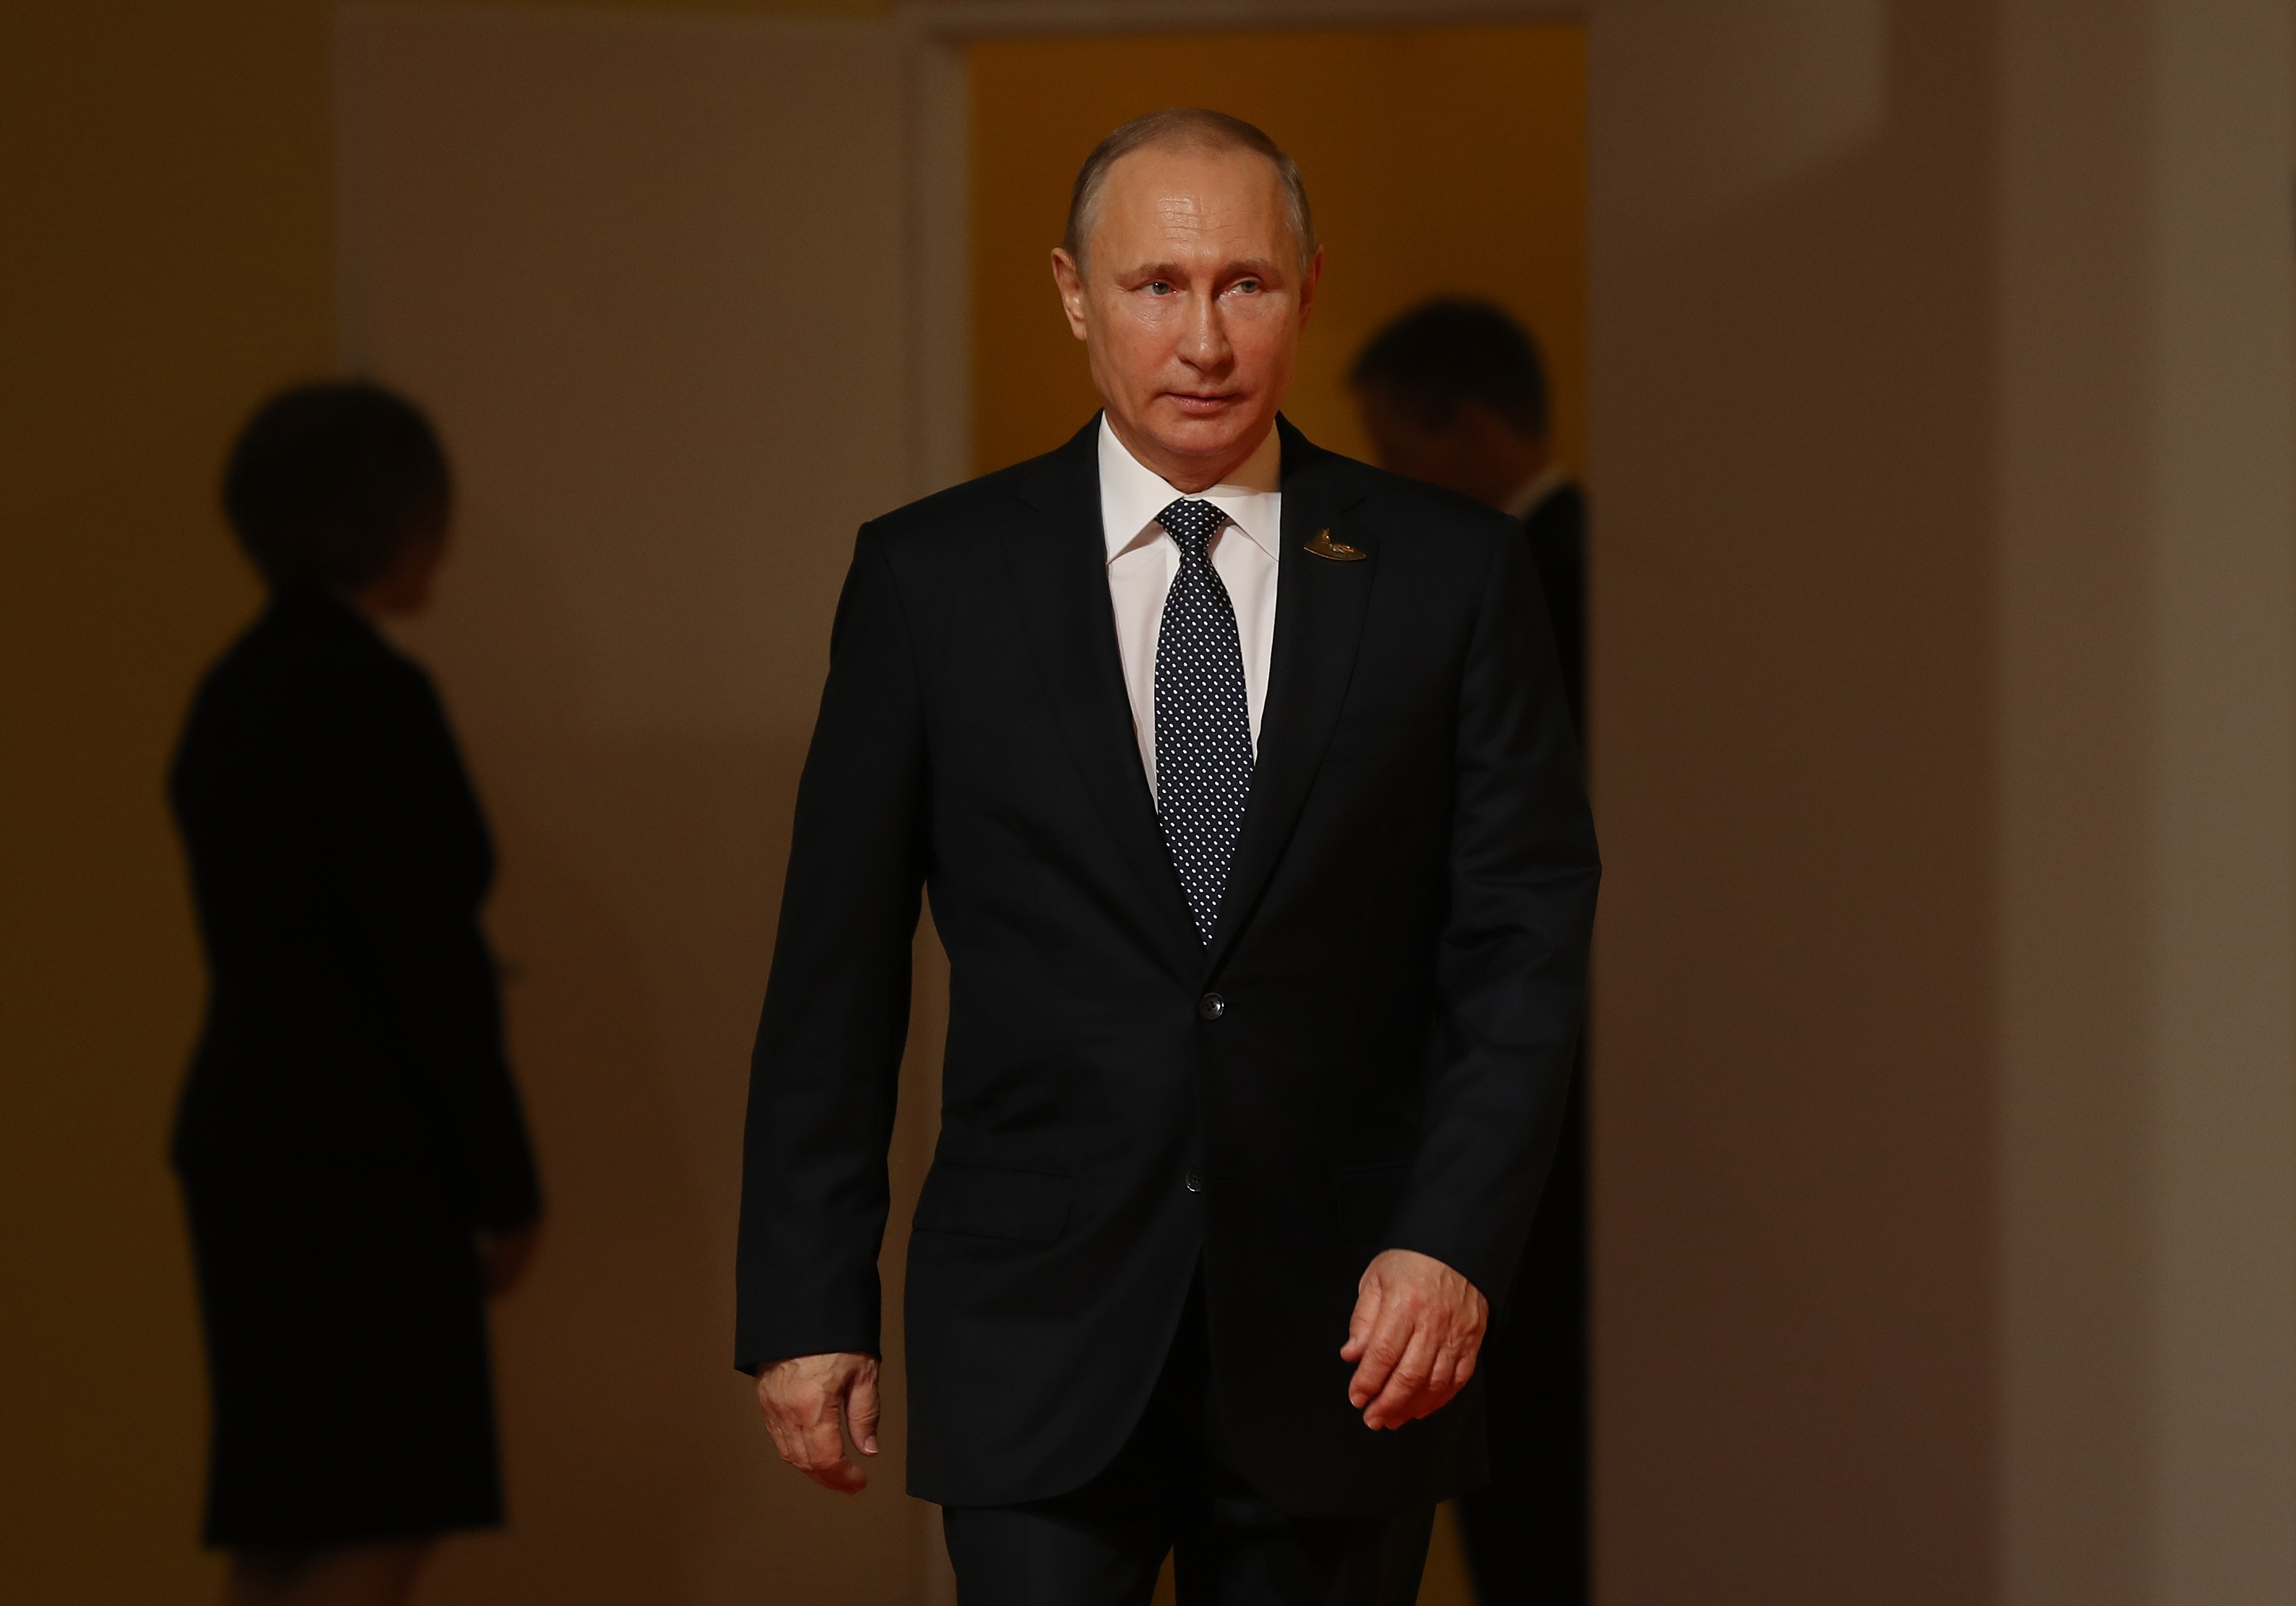 Putin just kicked out 150 Western diplomats. What comes next could be much worse.